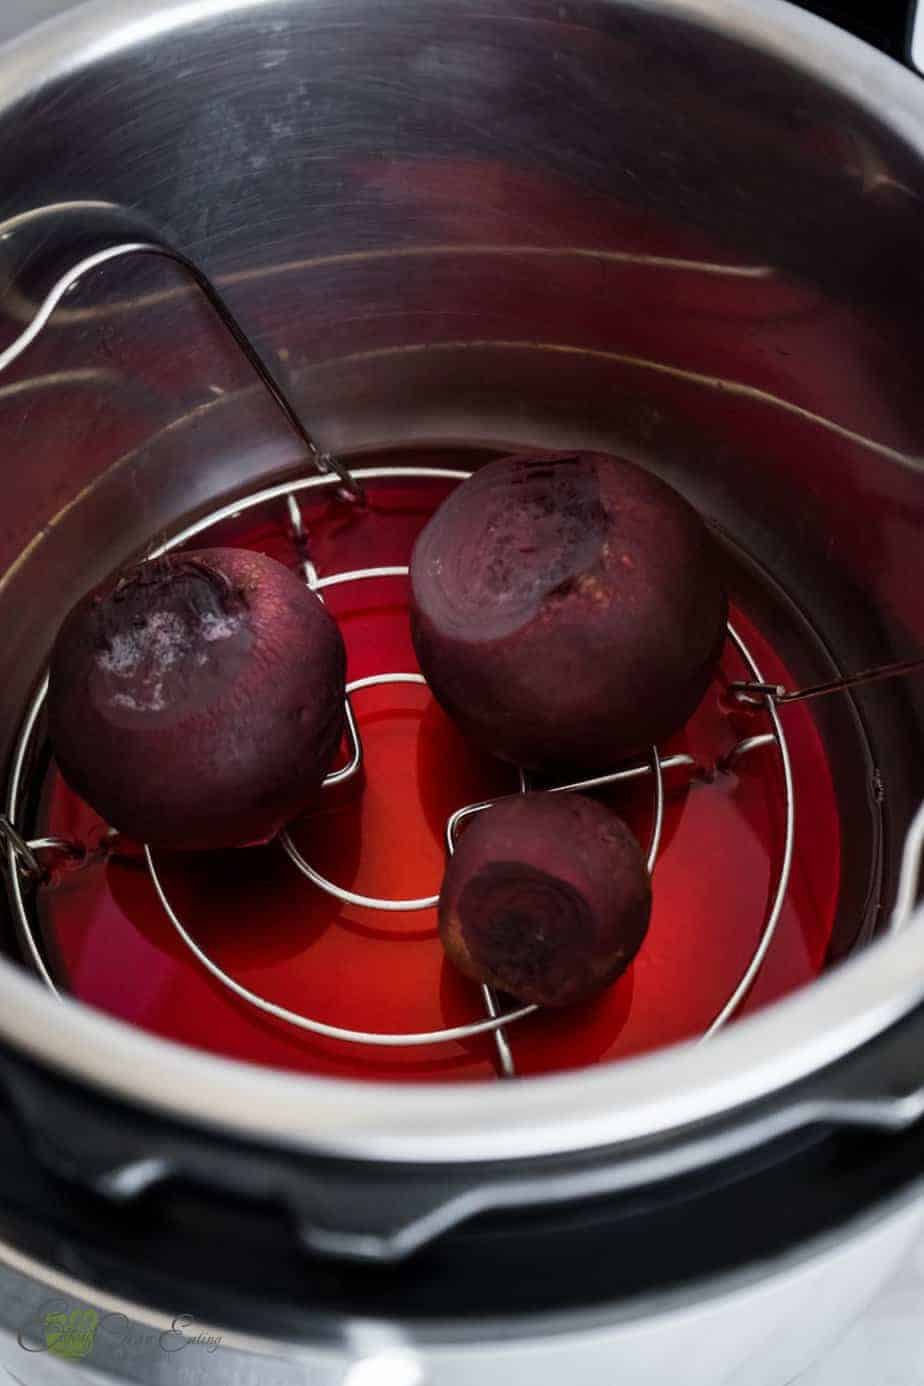 beets inside the instant pot after pressure cooking them, the water is stained with red color.